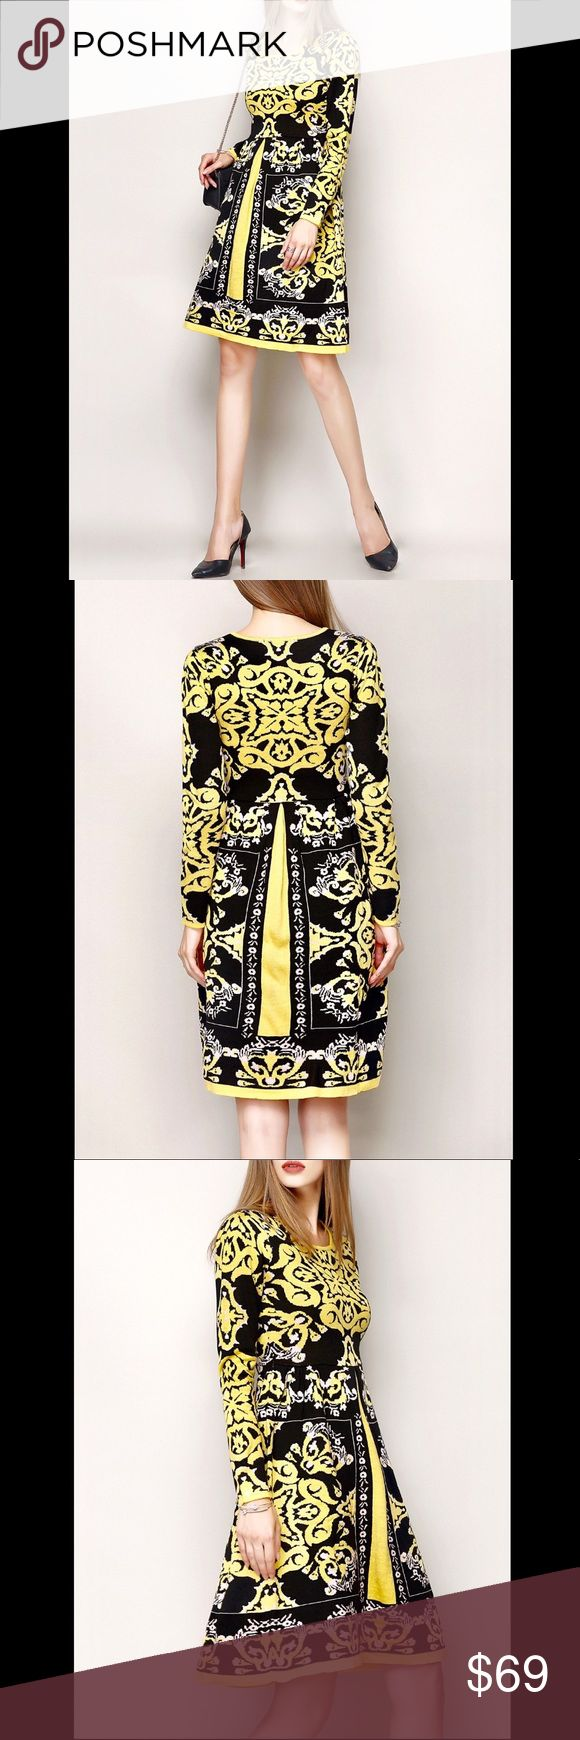 NEXIIA Tribal Print Sweater Dress Long-sleeved crewneck knitted jacquard A-line sweater dress with yellow, black, and pink tribal print made of comfort-stretch wool (30%) and viscose (70%). NEXIIA Dresses Long Sleeve